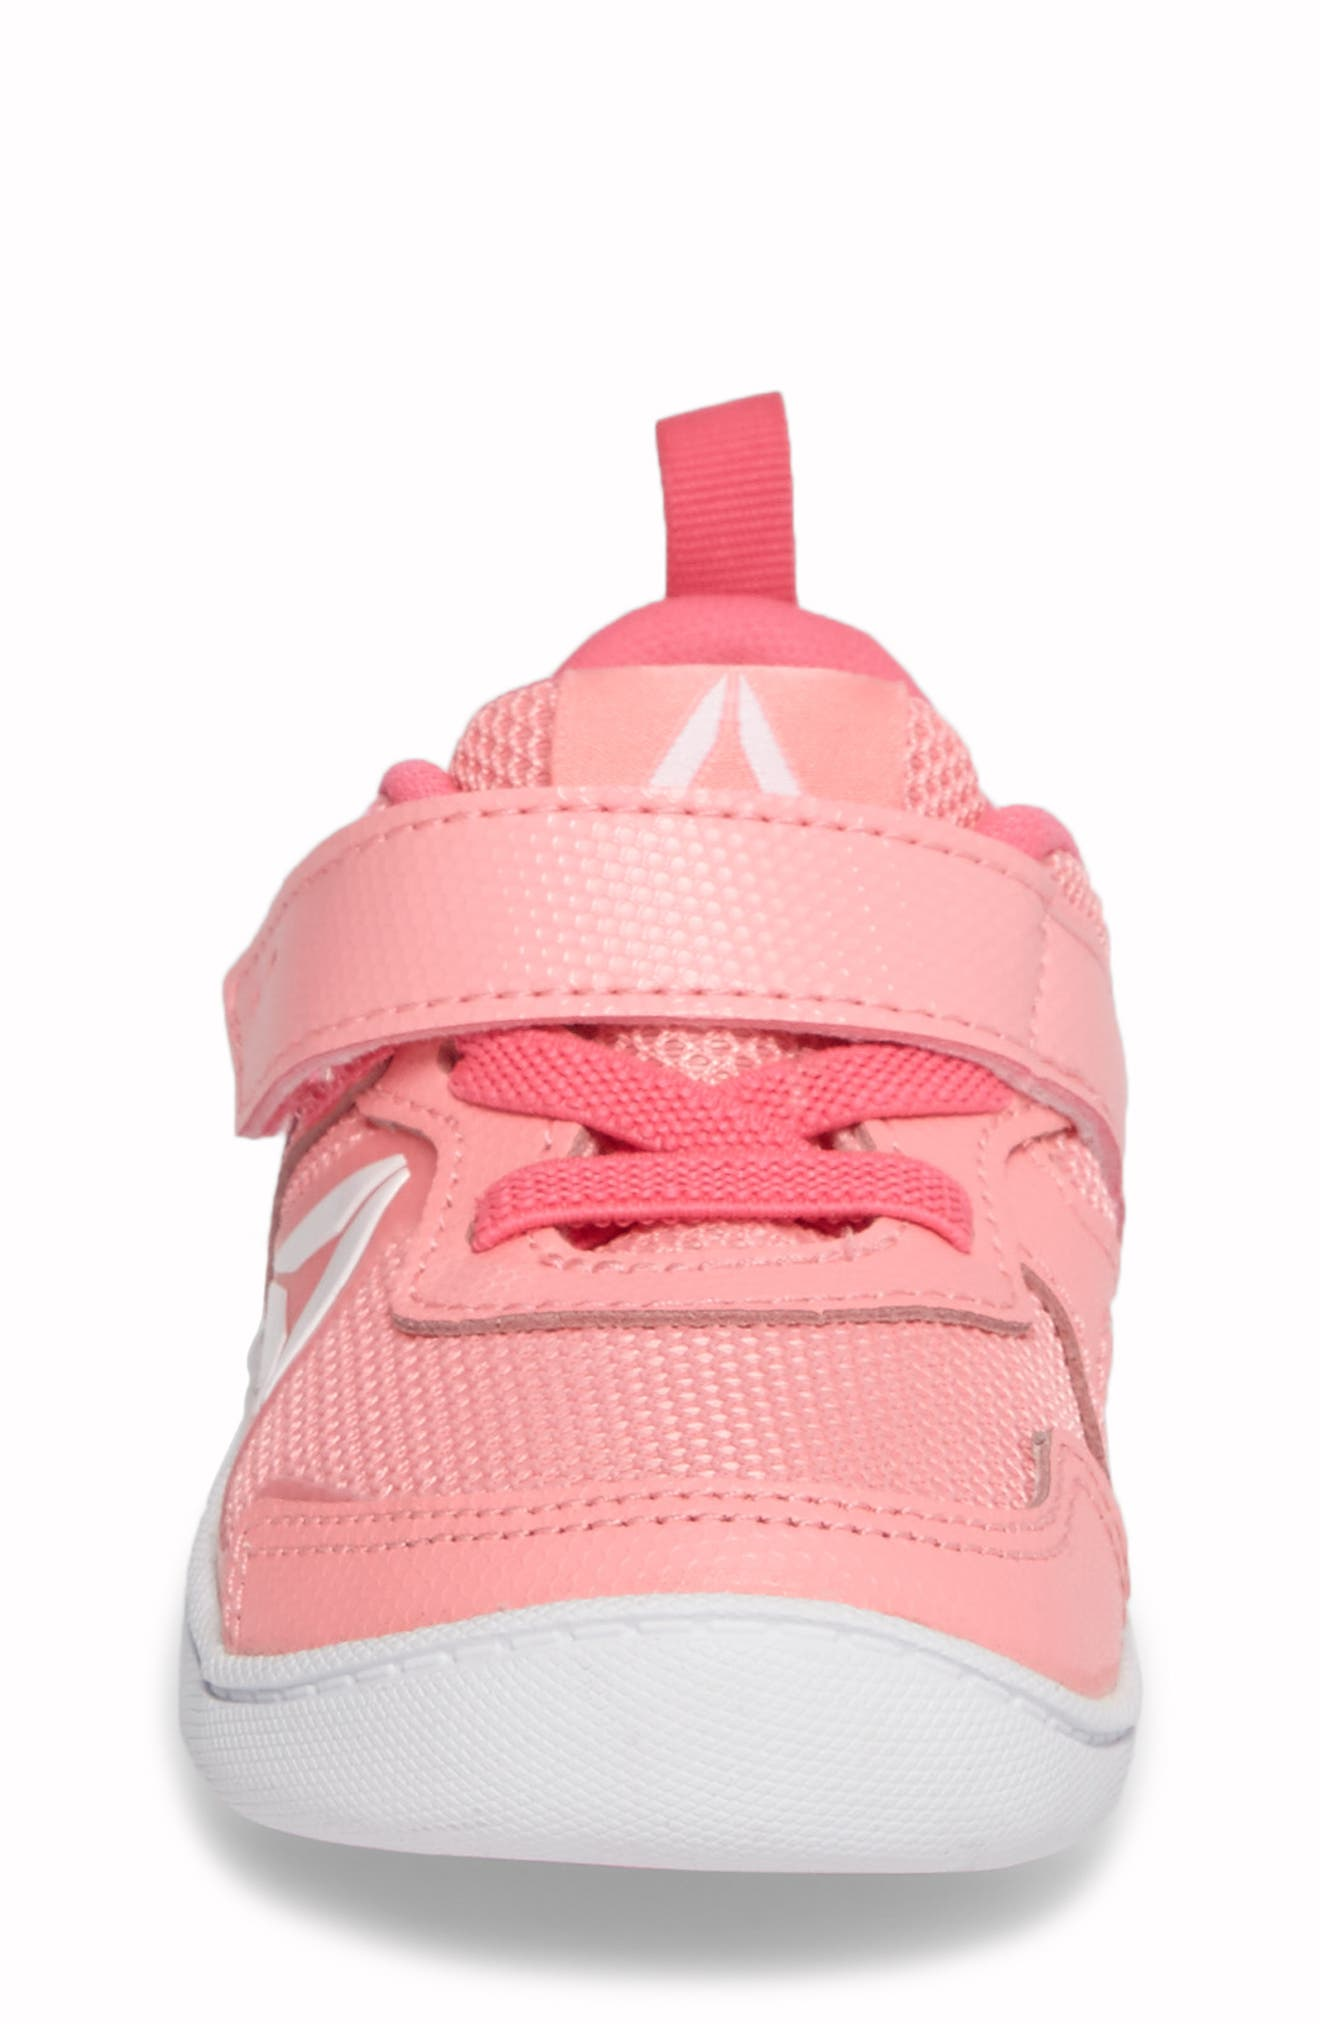 Ventureflex Stride 5.0 Sneaker,                             Alternate thumbnail 4, color,                             Peppy Pink/ Solar Pink/ White